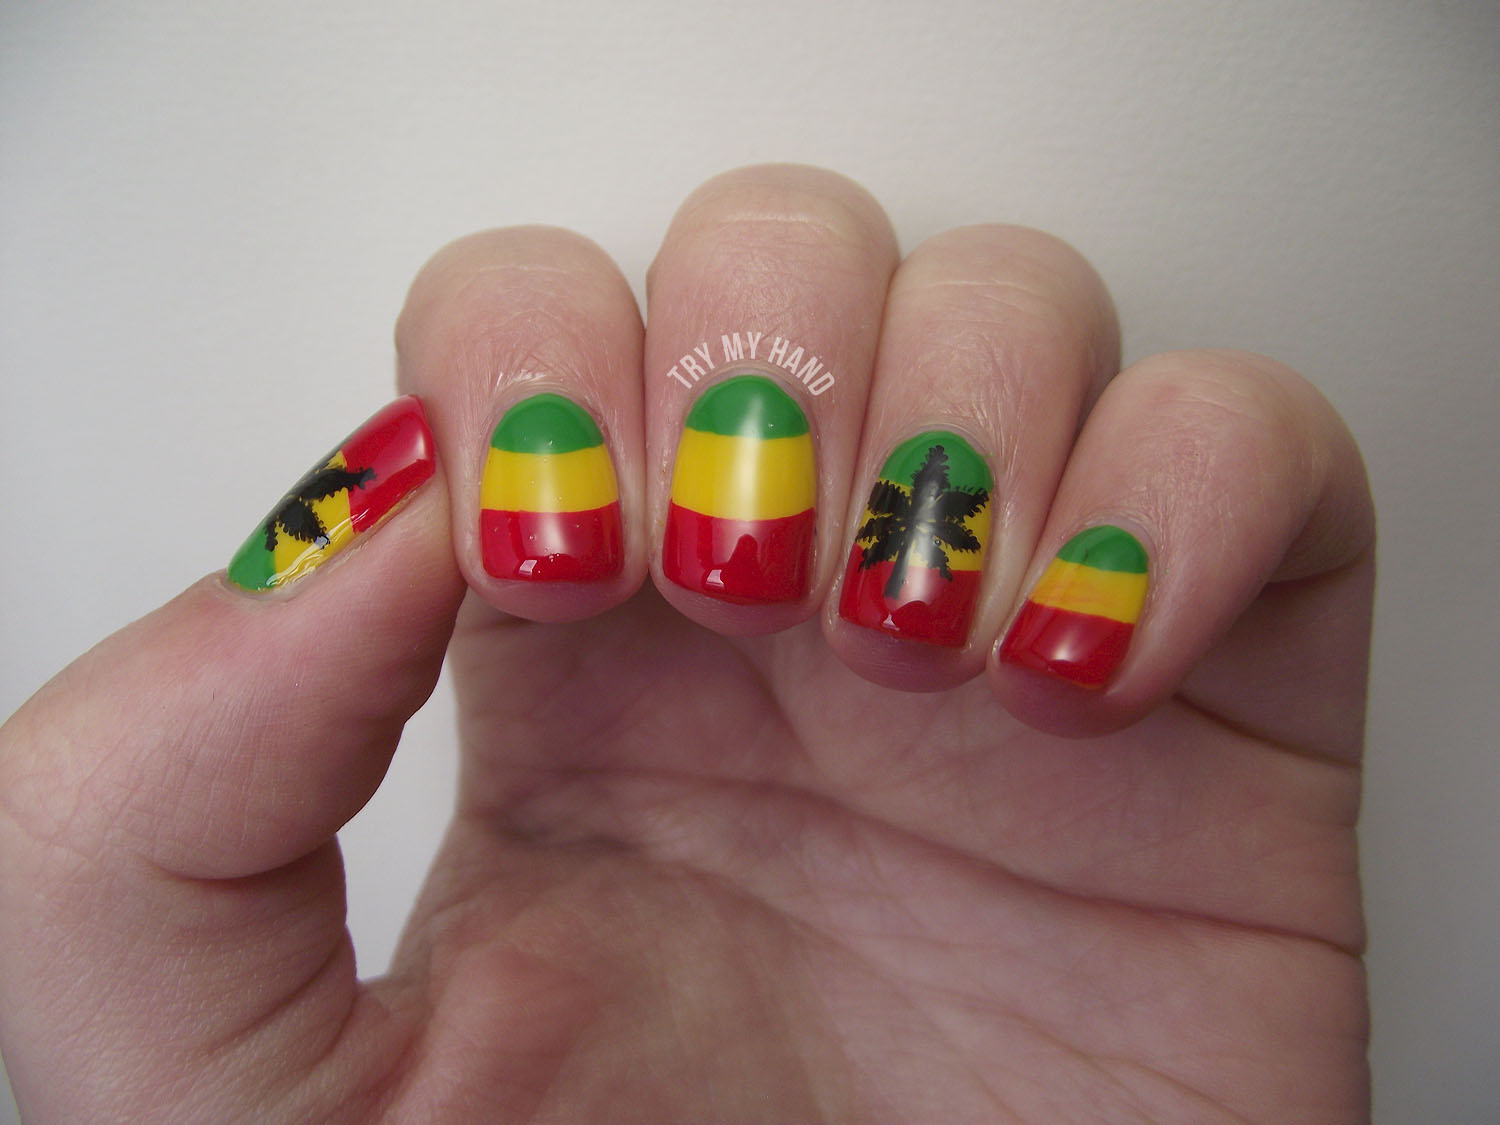 Try My Hand: Alphabet Nail Art Challenge : R for Rasta